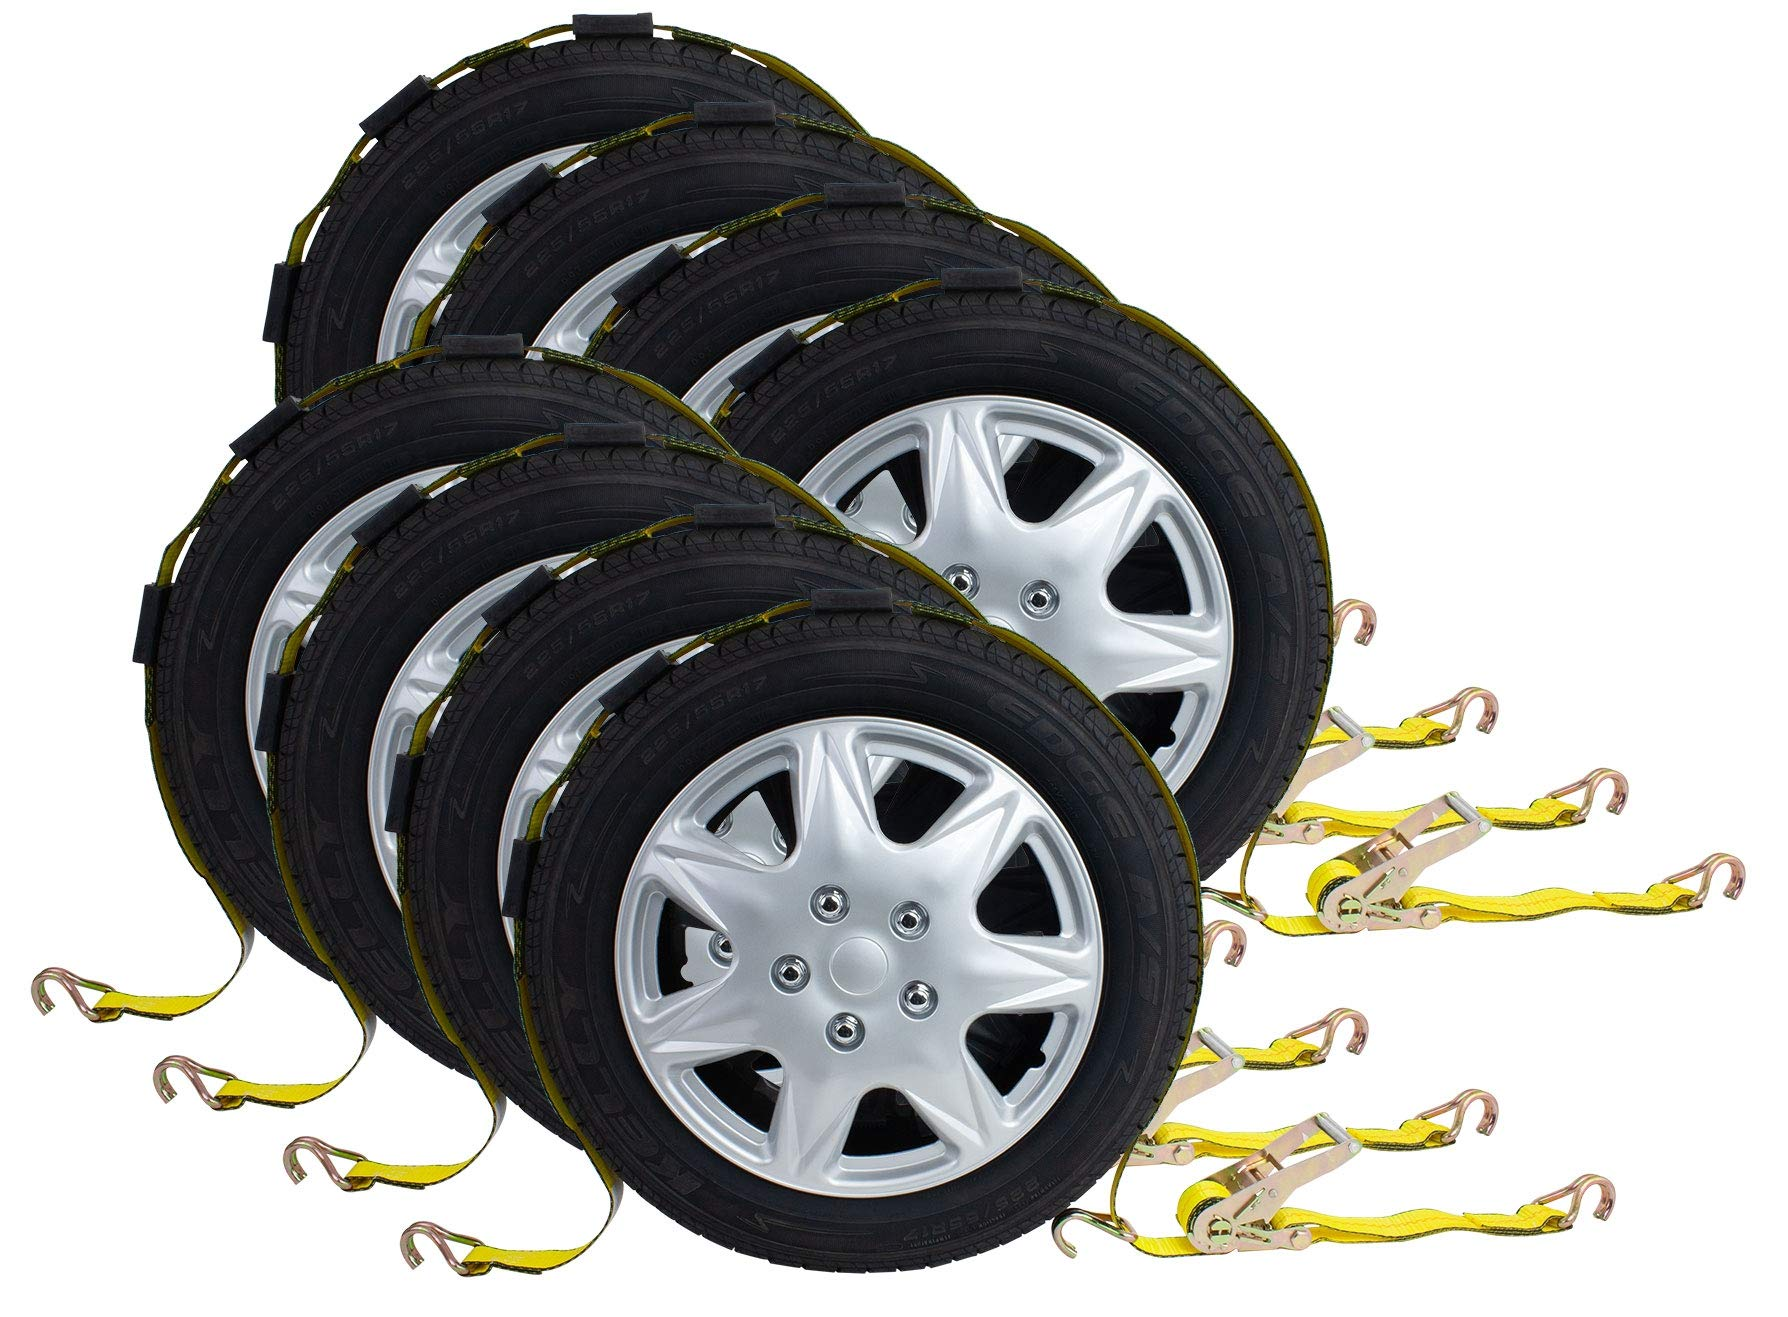 (8 Pack) 2''x10' Ratchet Tire Strap w/ 3 Wire J Hooks and Rubber Blocks